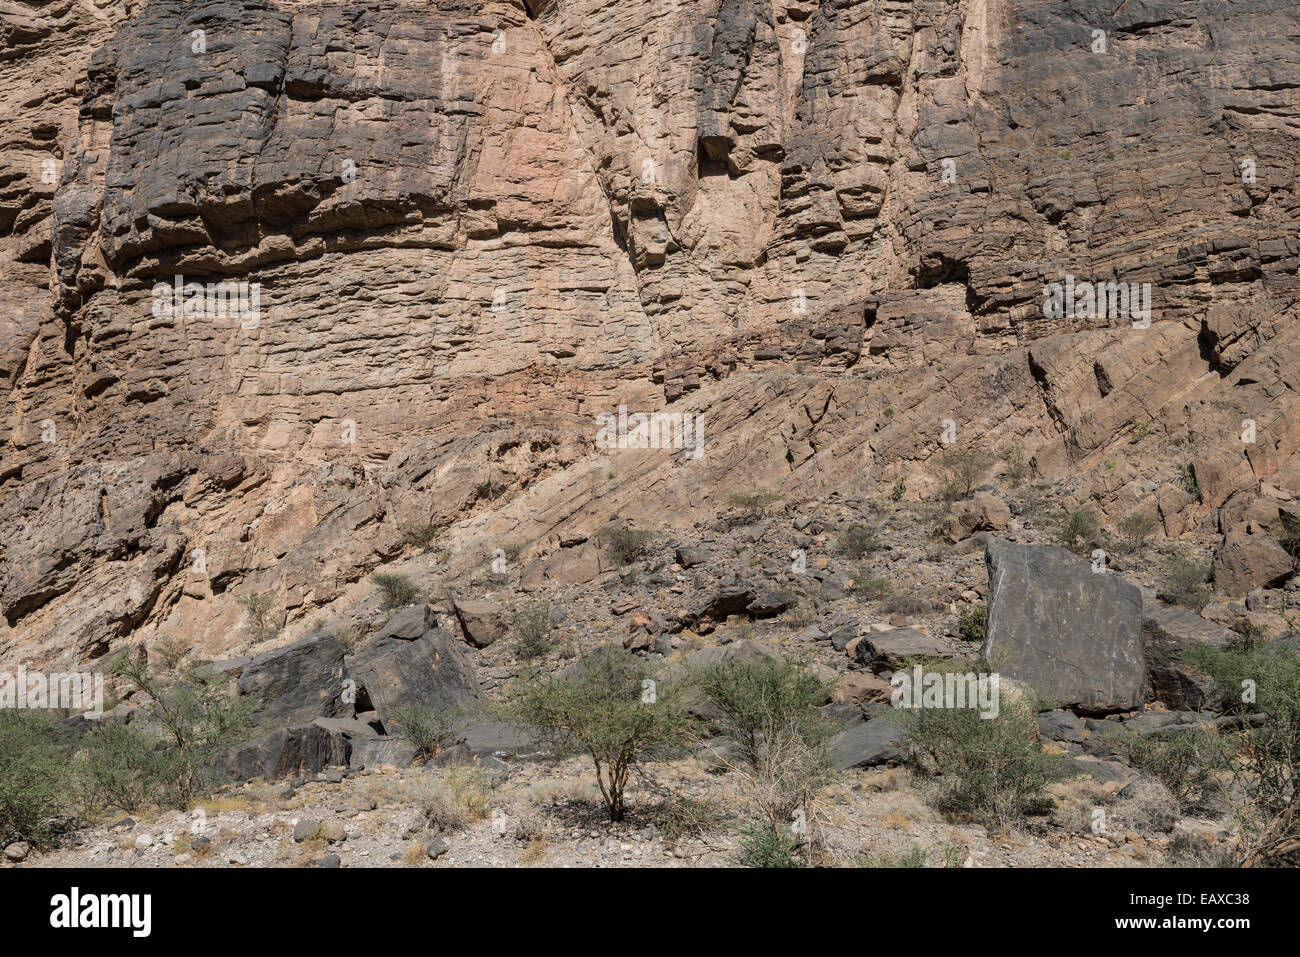 An angular unconformity between two stratigraphic units. Oman. - Stock Image